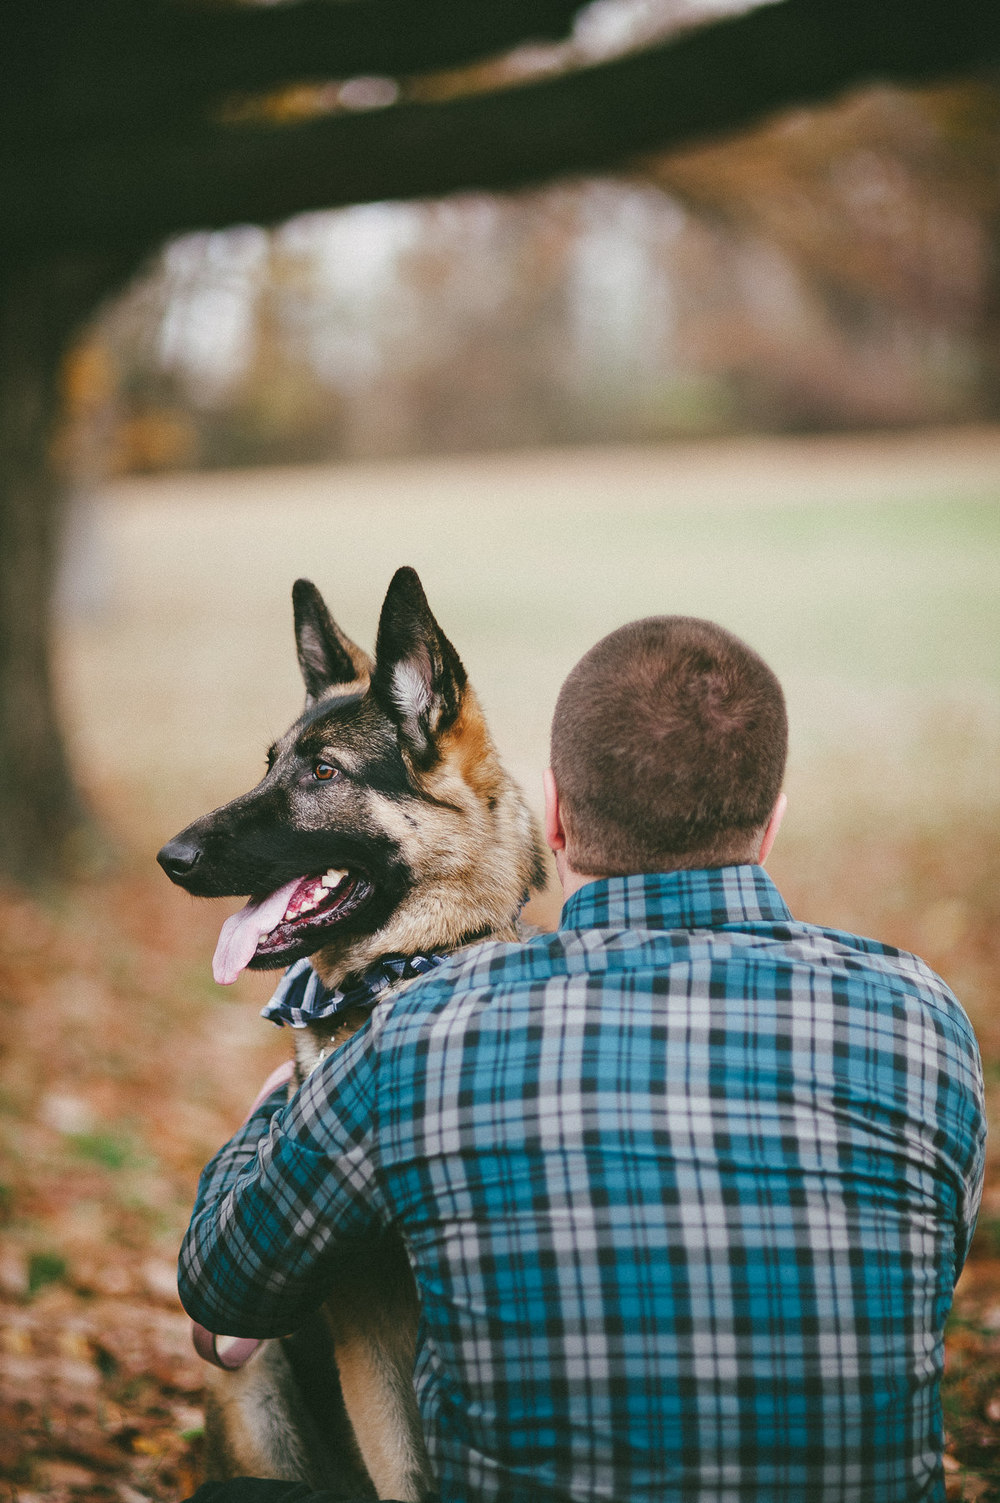 breighton-and-basette-photography-copyrighted-image-blog-the-coreys-family-session-024.jpg